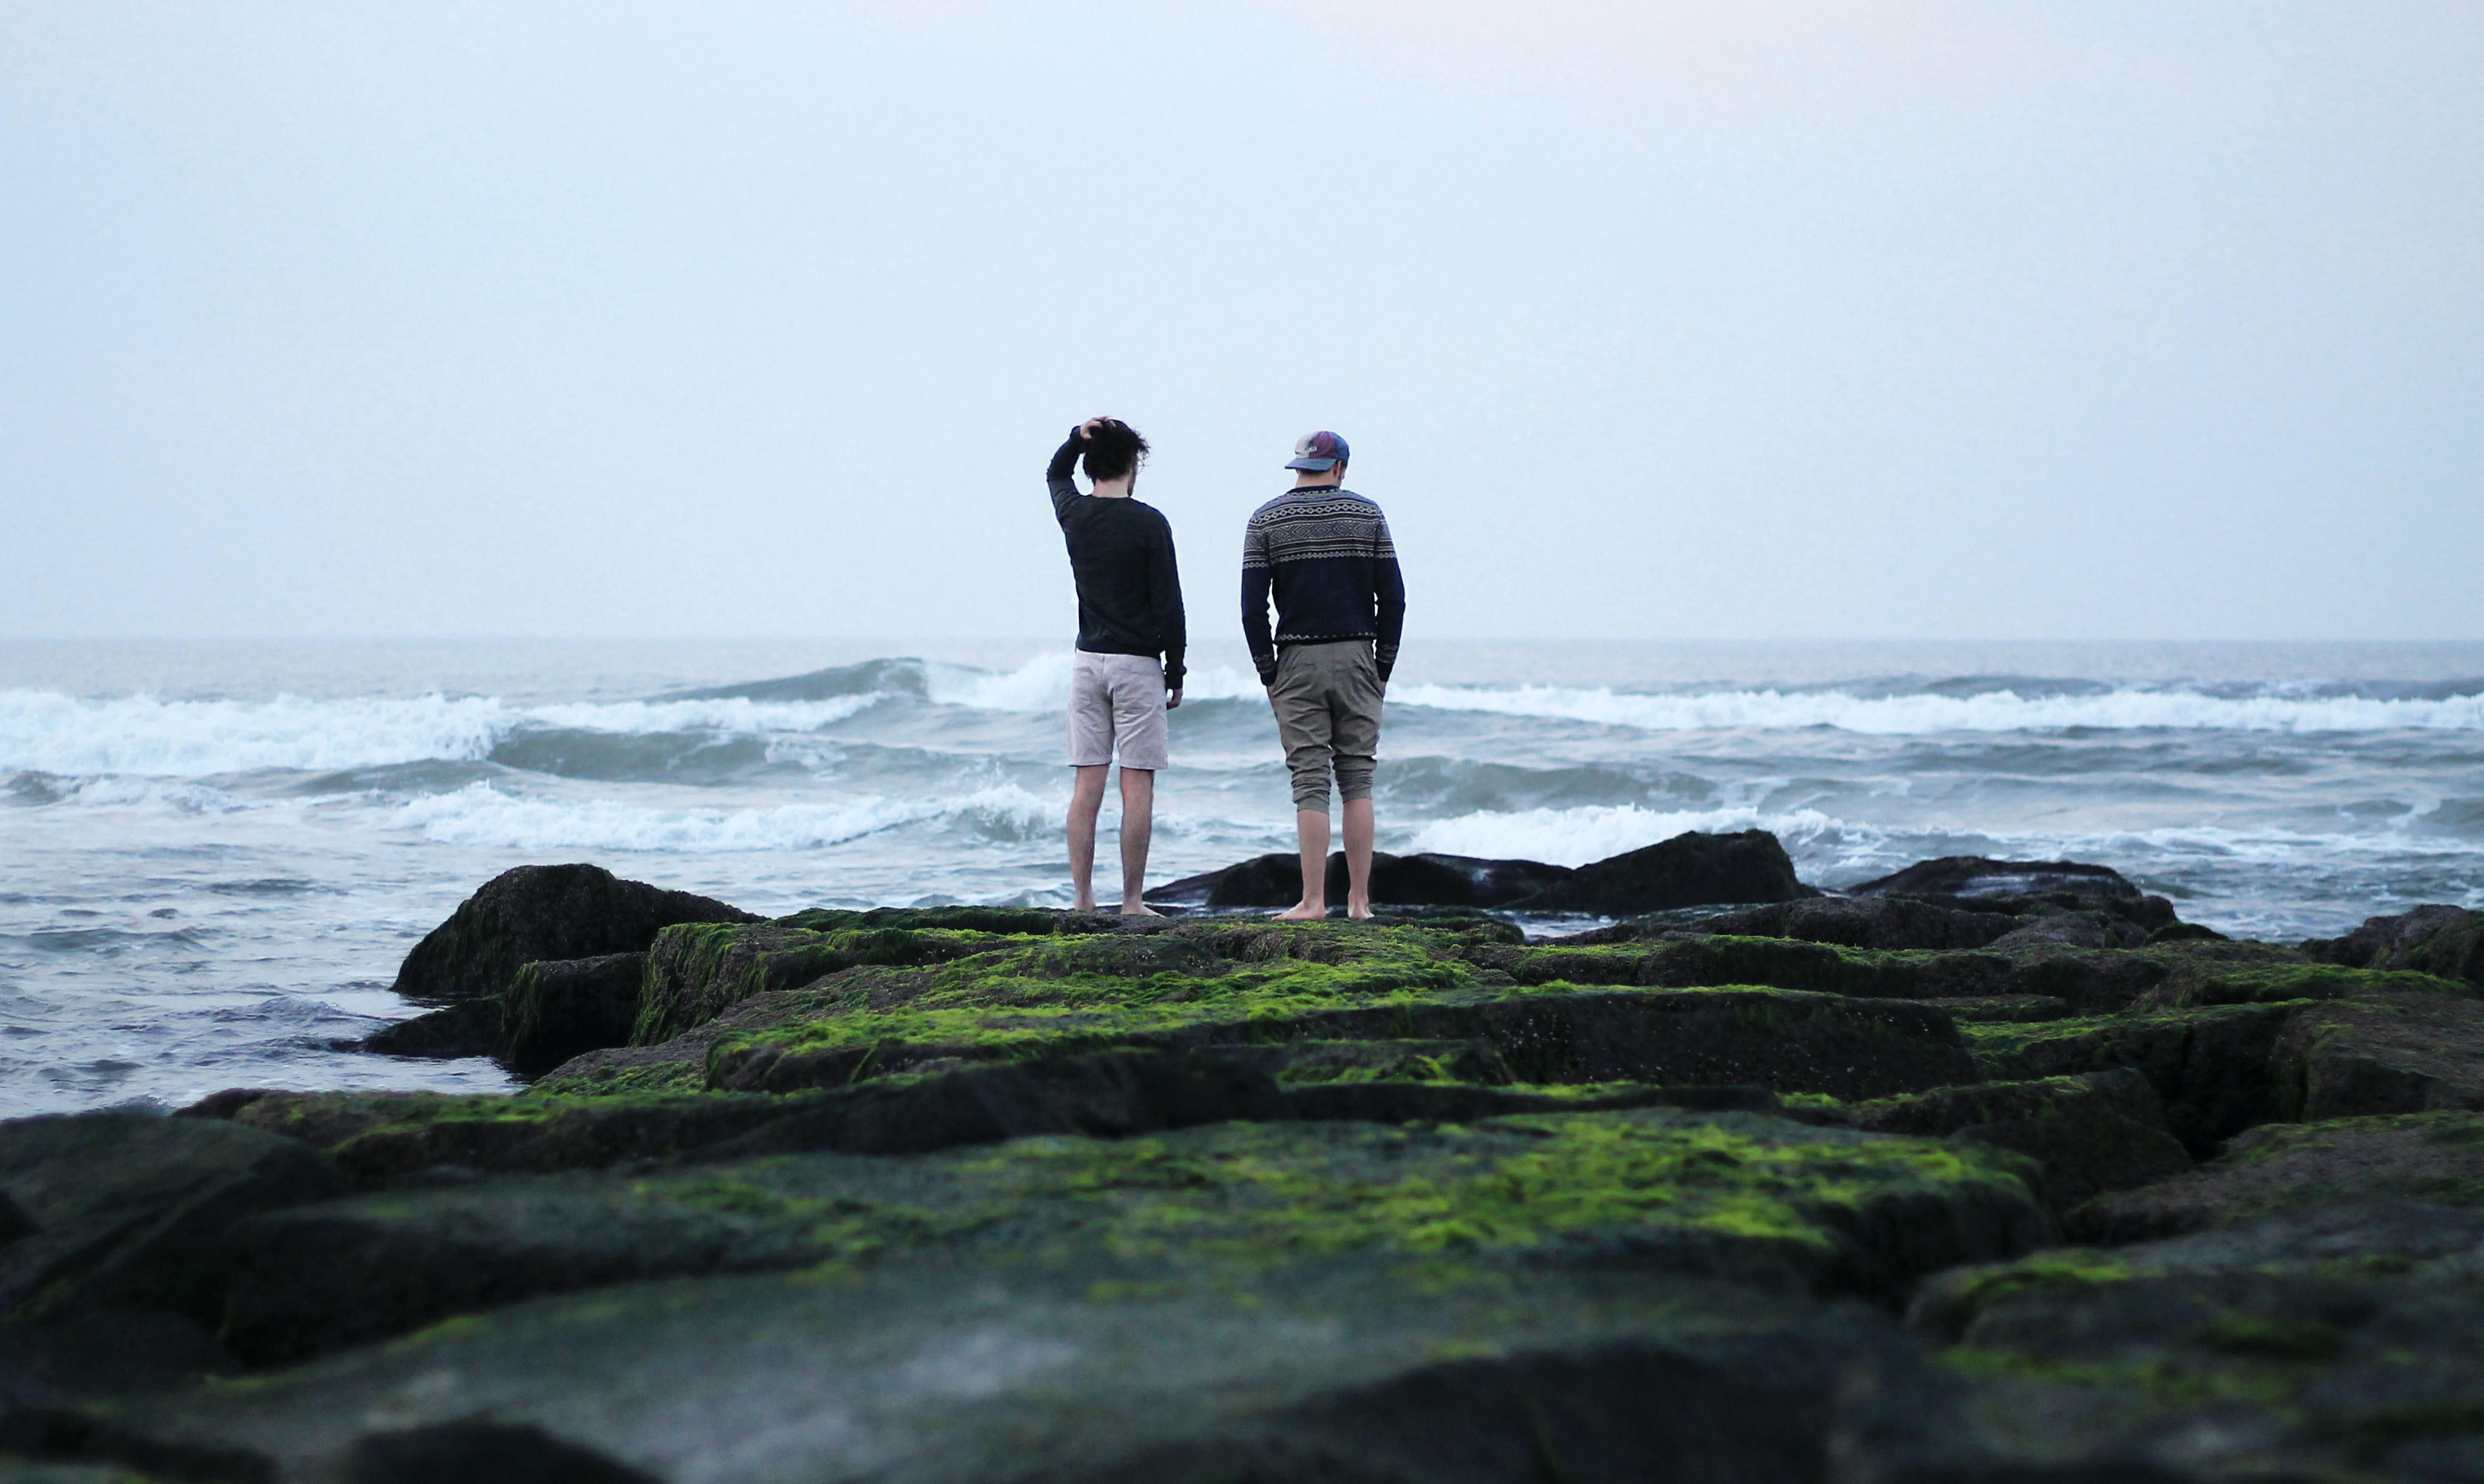 Two men standing on coastal rocks, looking out to sea